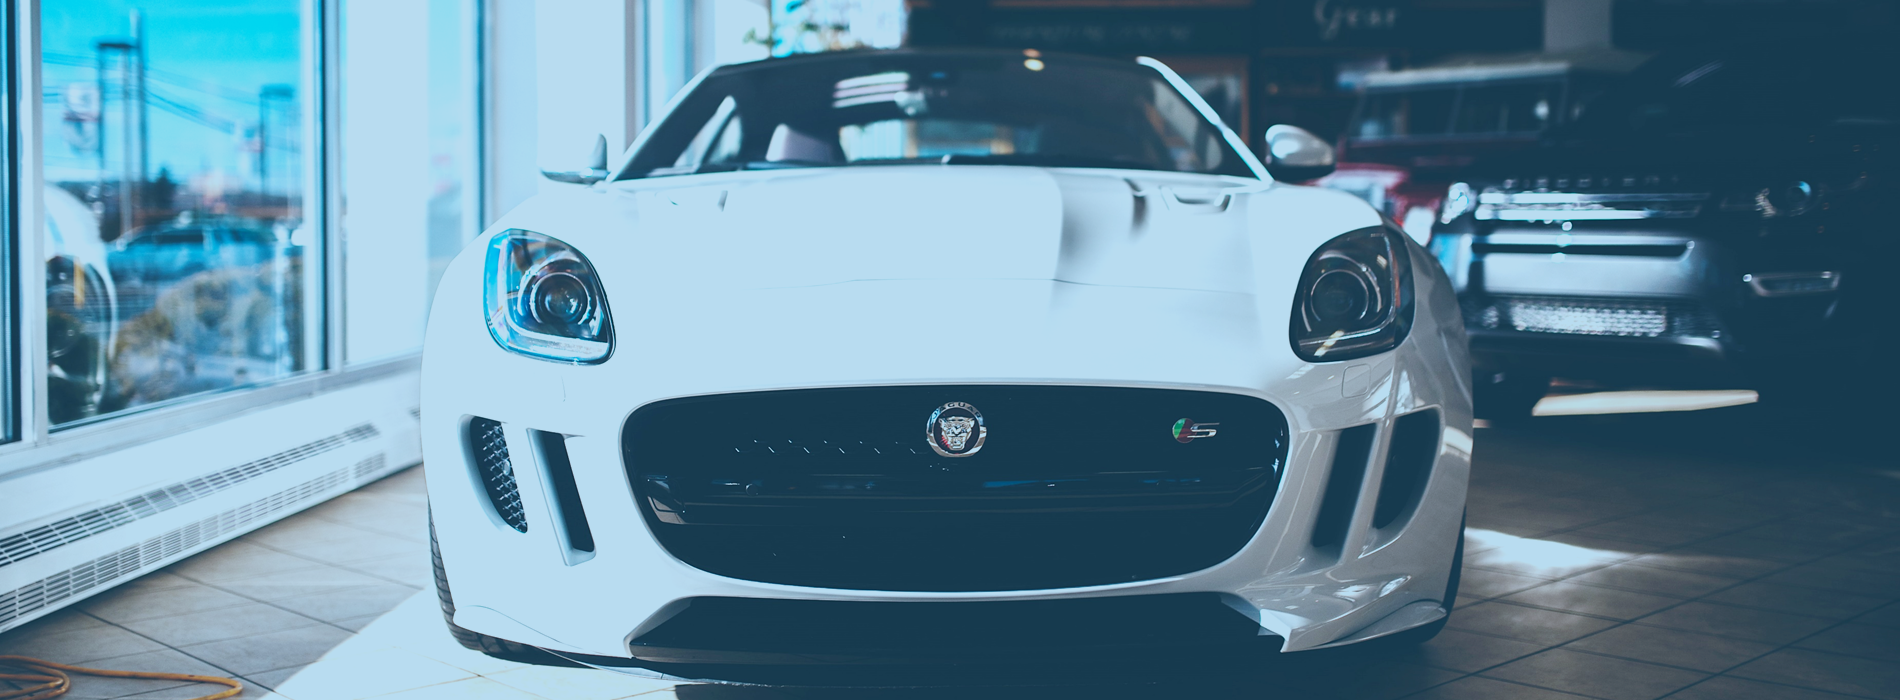 Off the floor and out the door: how enhancing the customer experience can transform automotive brands' prospects in tough times